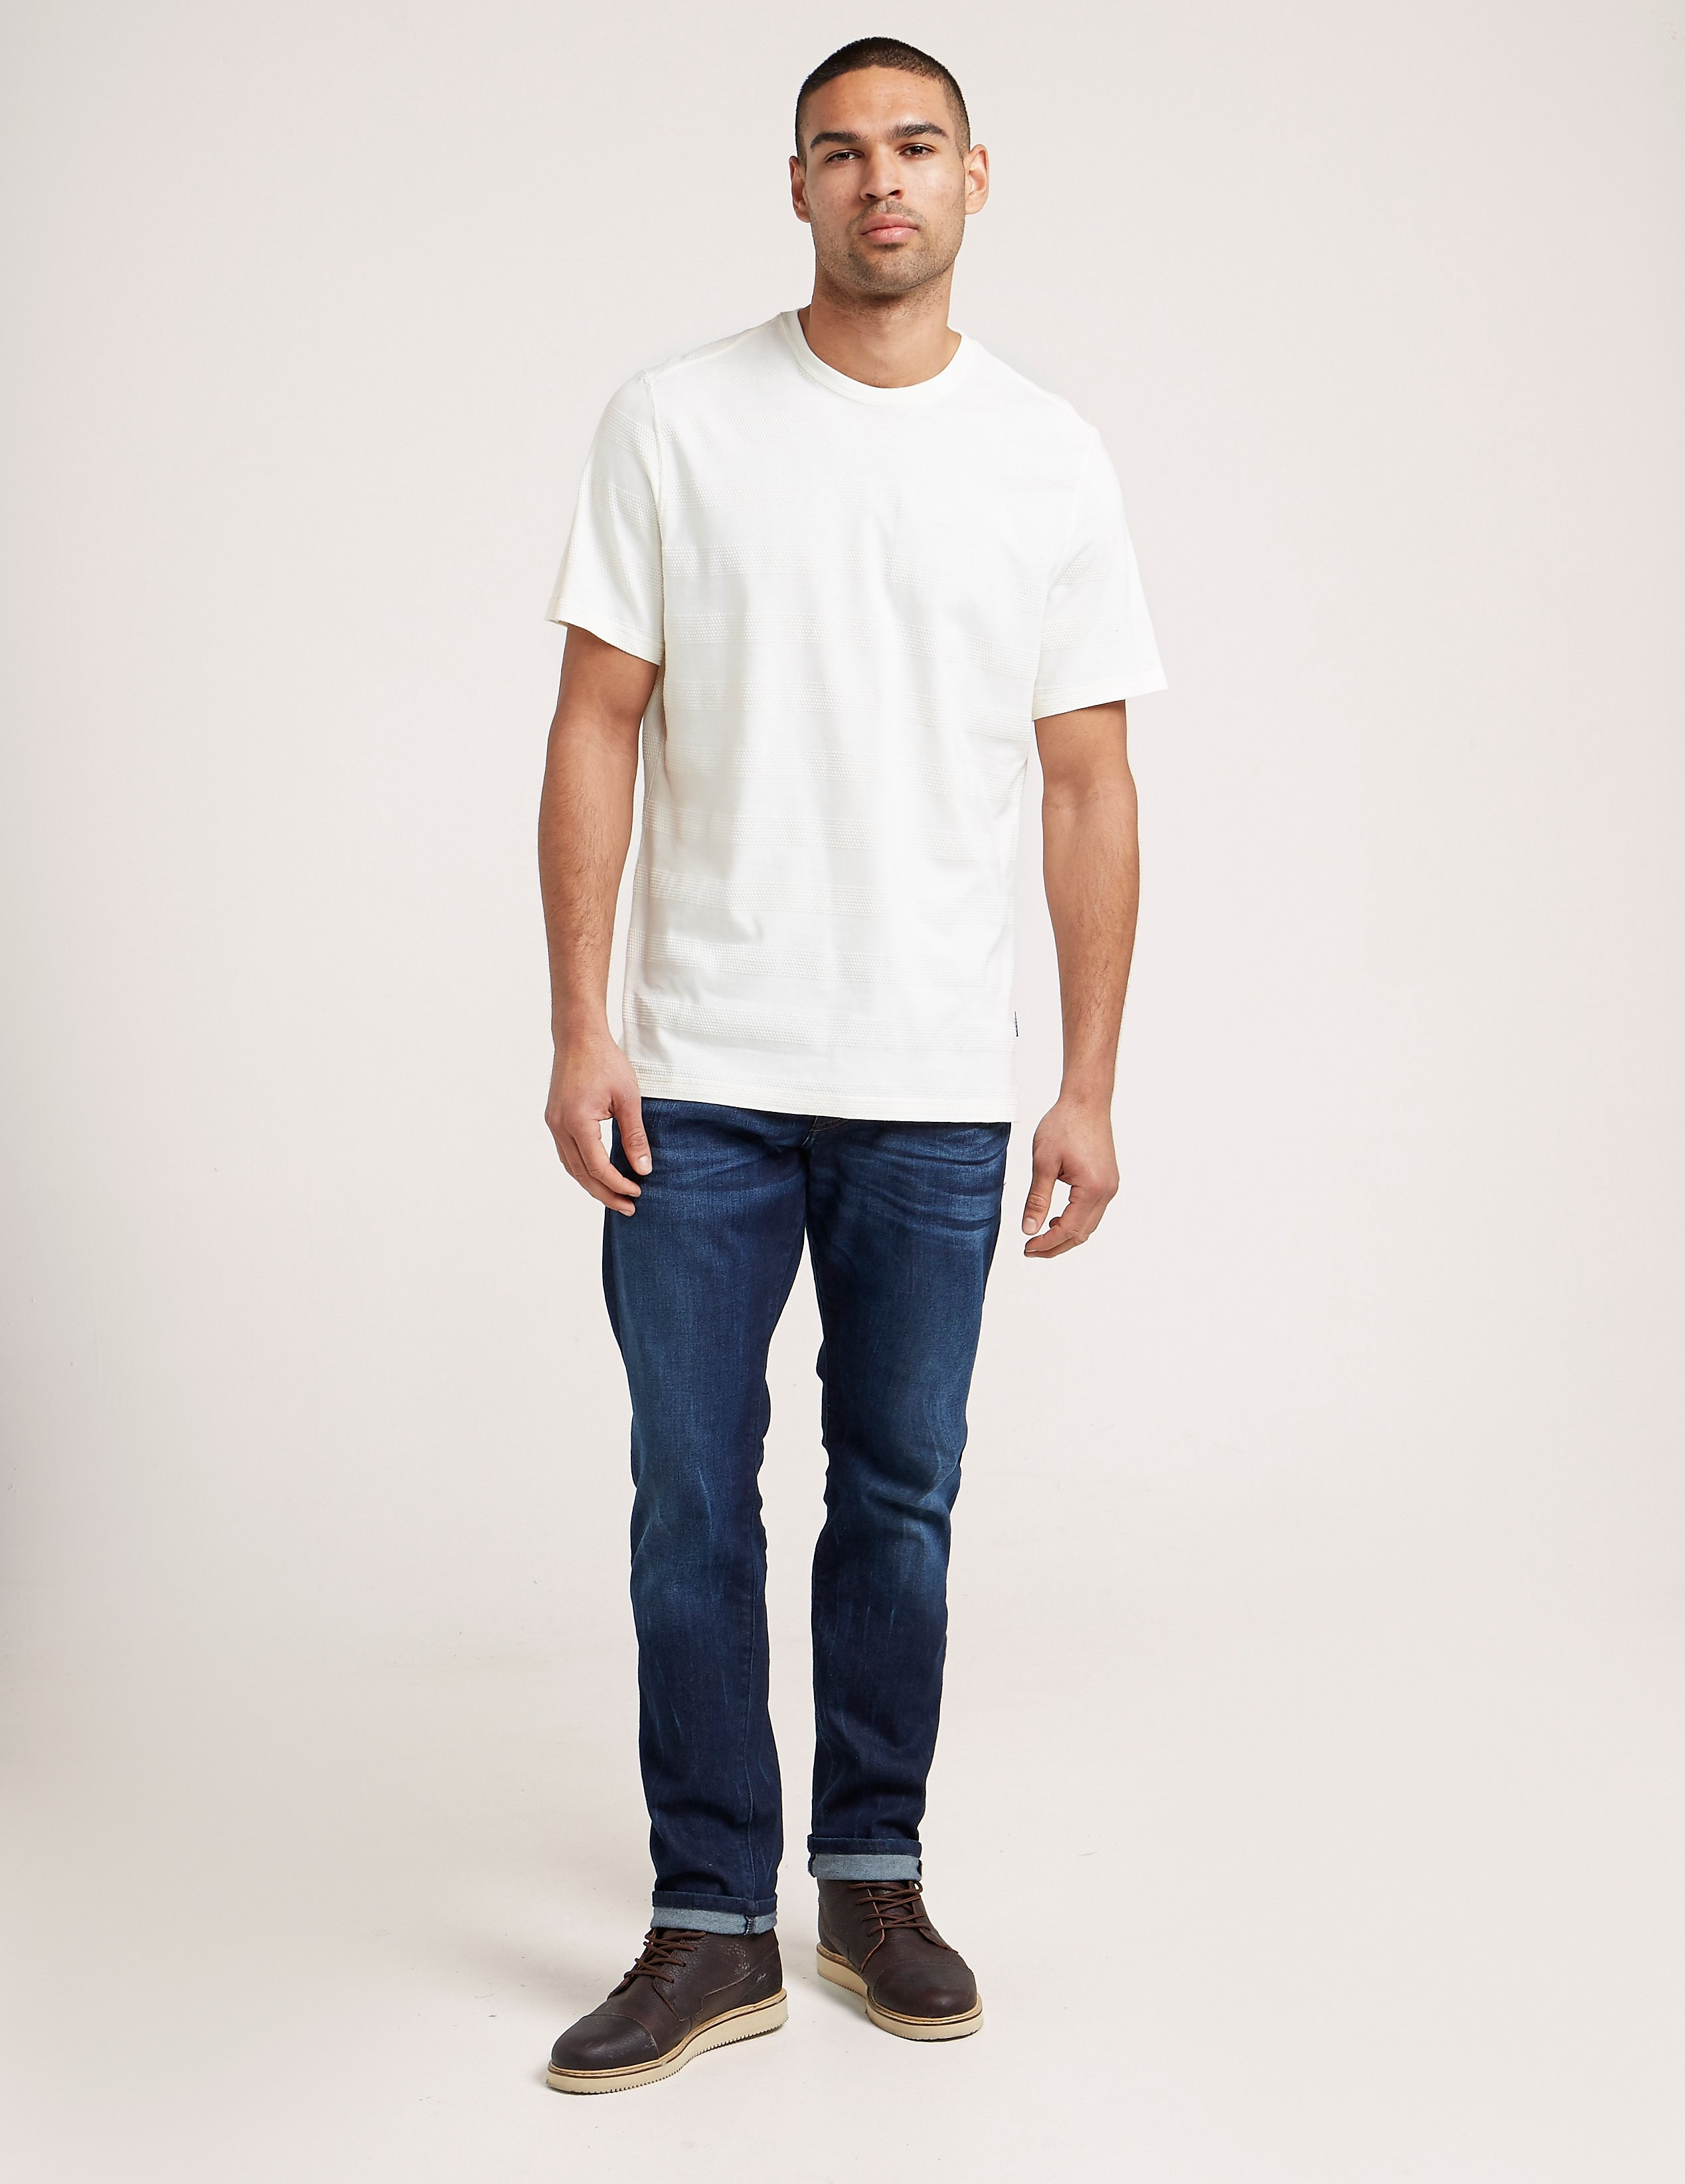 Barbour Textured Striped Short Sleeve T-Shirt